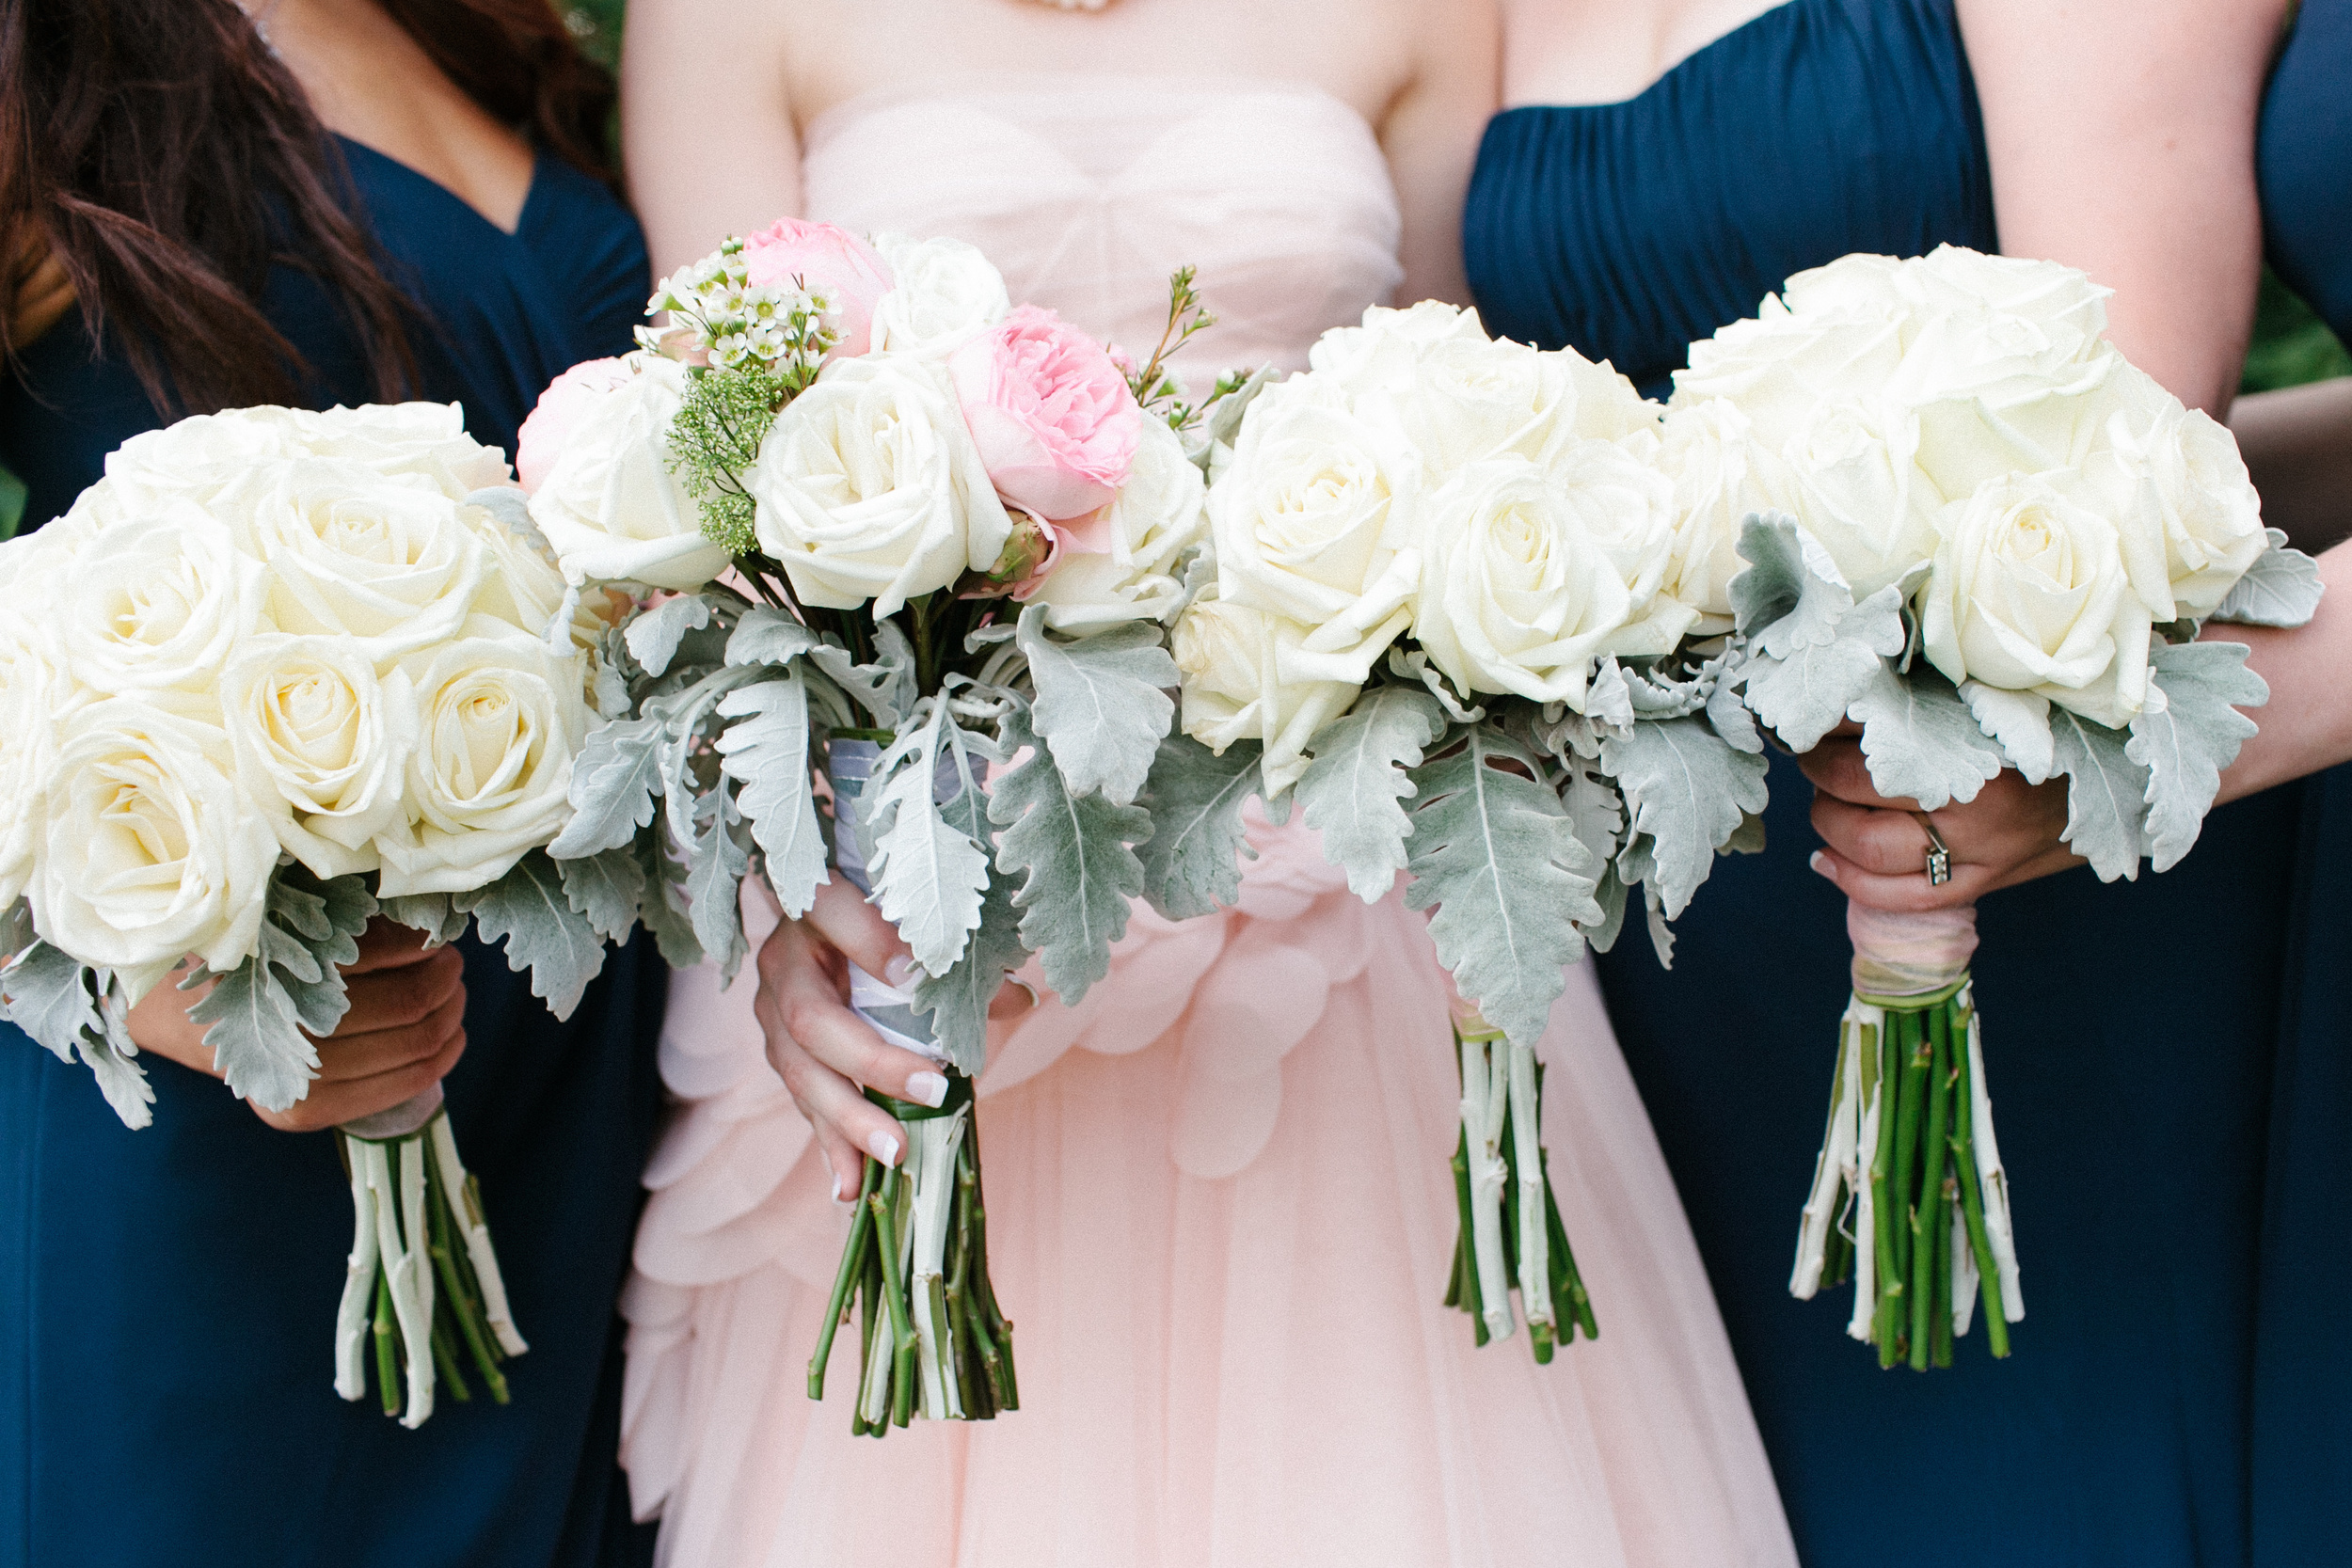 Pretty Bridesmaids and Bridal Bouquet | Pink and Navy Blue | photo by blf Studios | flowers by Norwood Florist | wedding by Madeline's Weddings